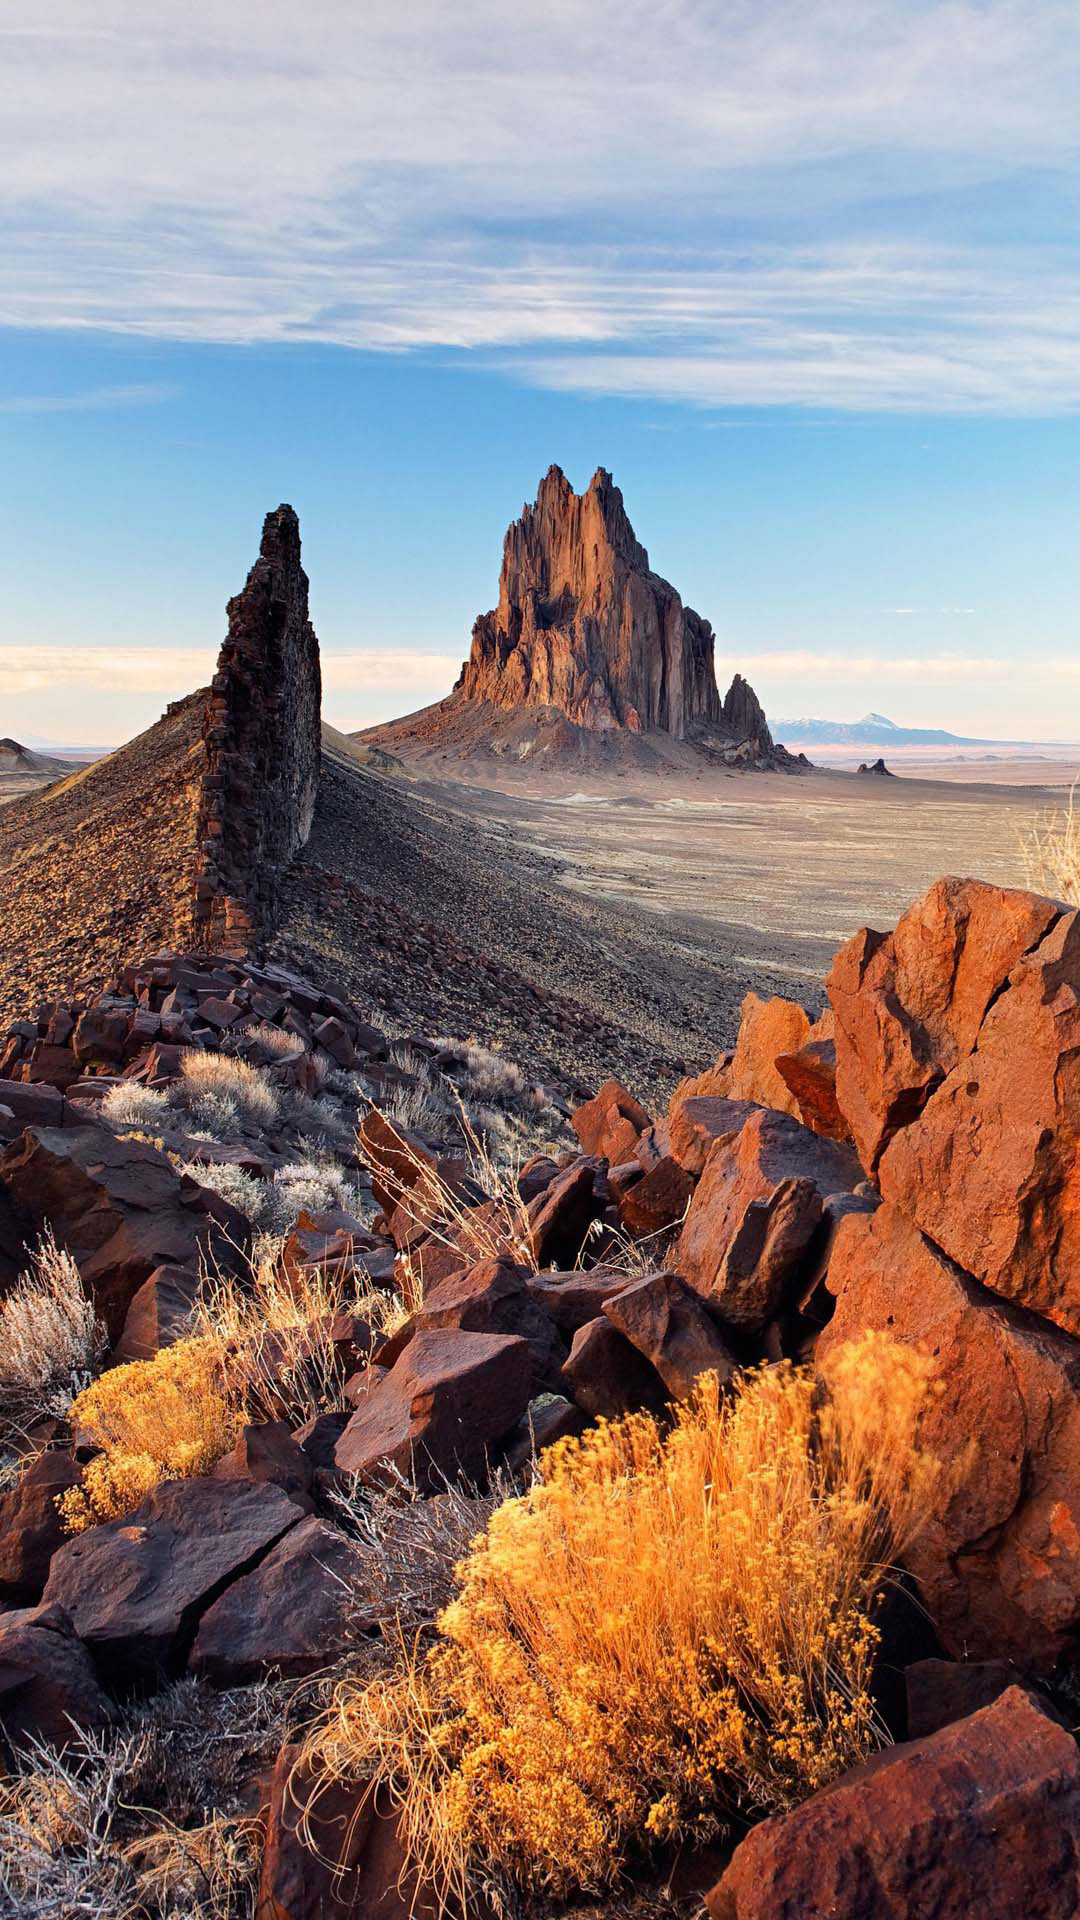 Rocky crags and peaks under the desert landscape image ...